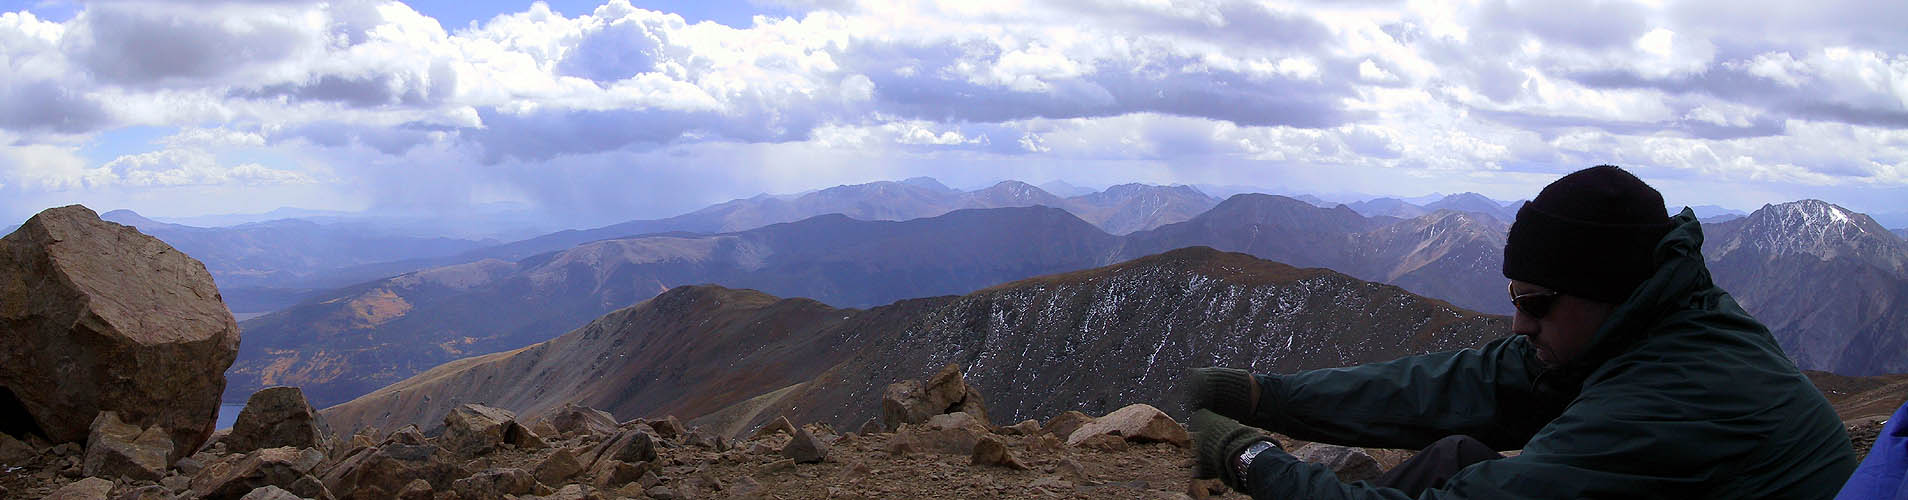 Mt Elbert 2001: Summit Panoramic